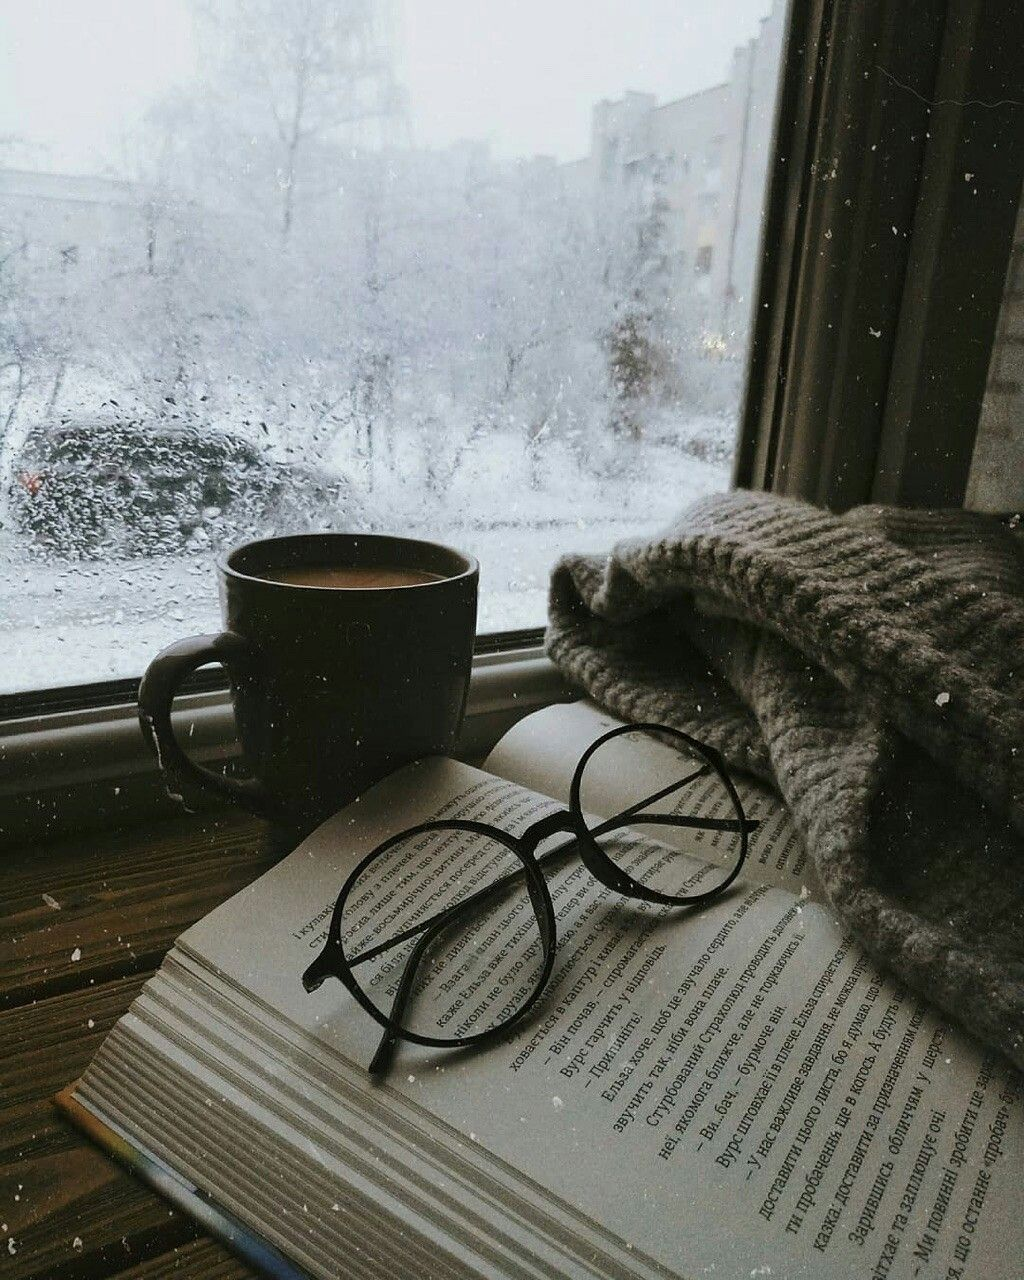 Books Lovers | Bookphile | Book Photography | Winter Days ...